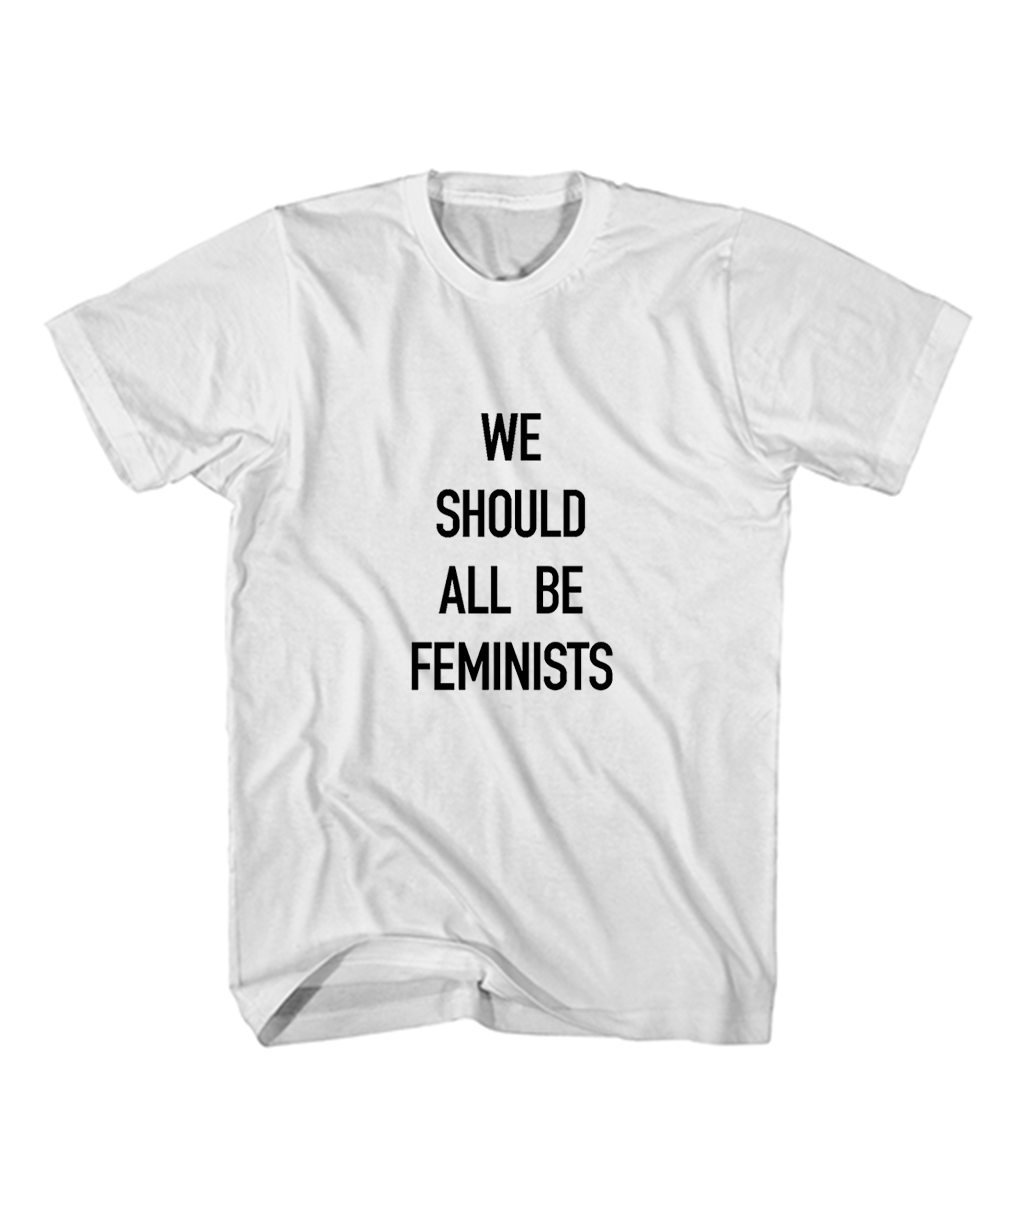 d26aadd32 We Should All Be Feminists Quote Dior T Shirt - Ferolos.com